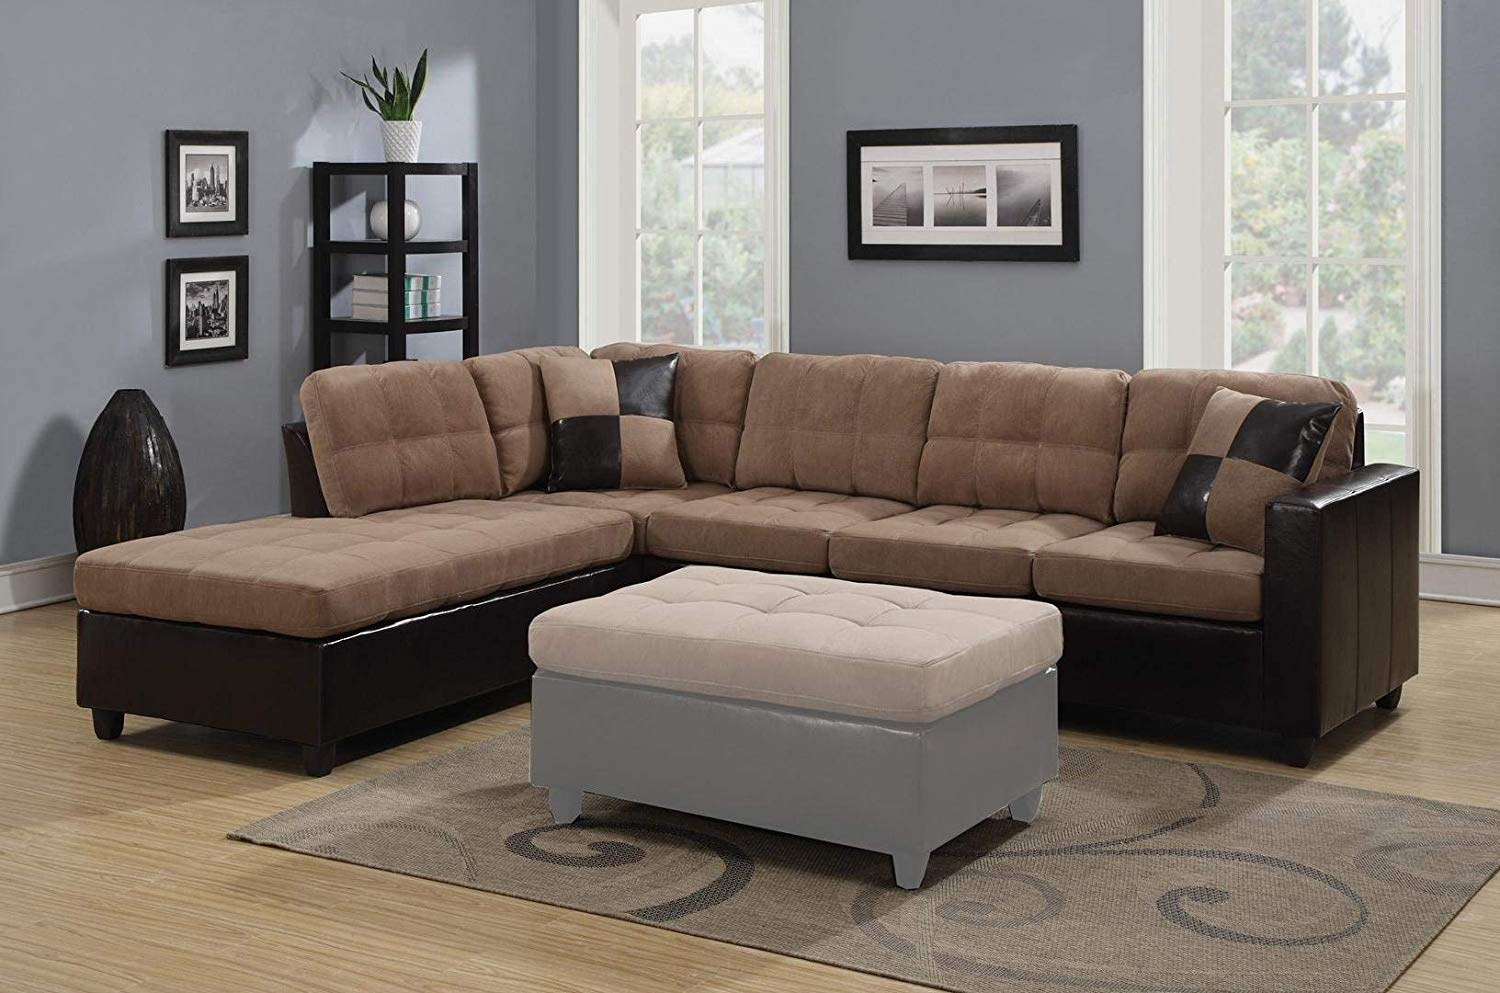 Miraculous Reversible Casual Tan Microfiber And Brown Faux Leather Sectional Sofa With Pillows Evergreenethics Interior Chair Design Evergreenethicsorg